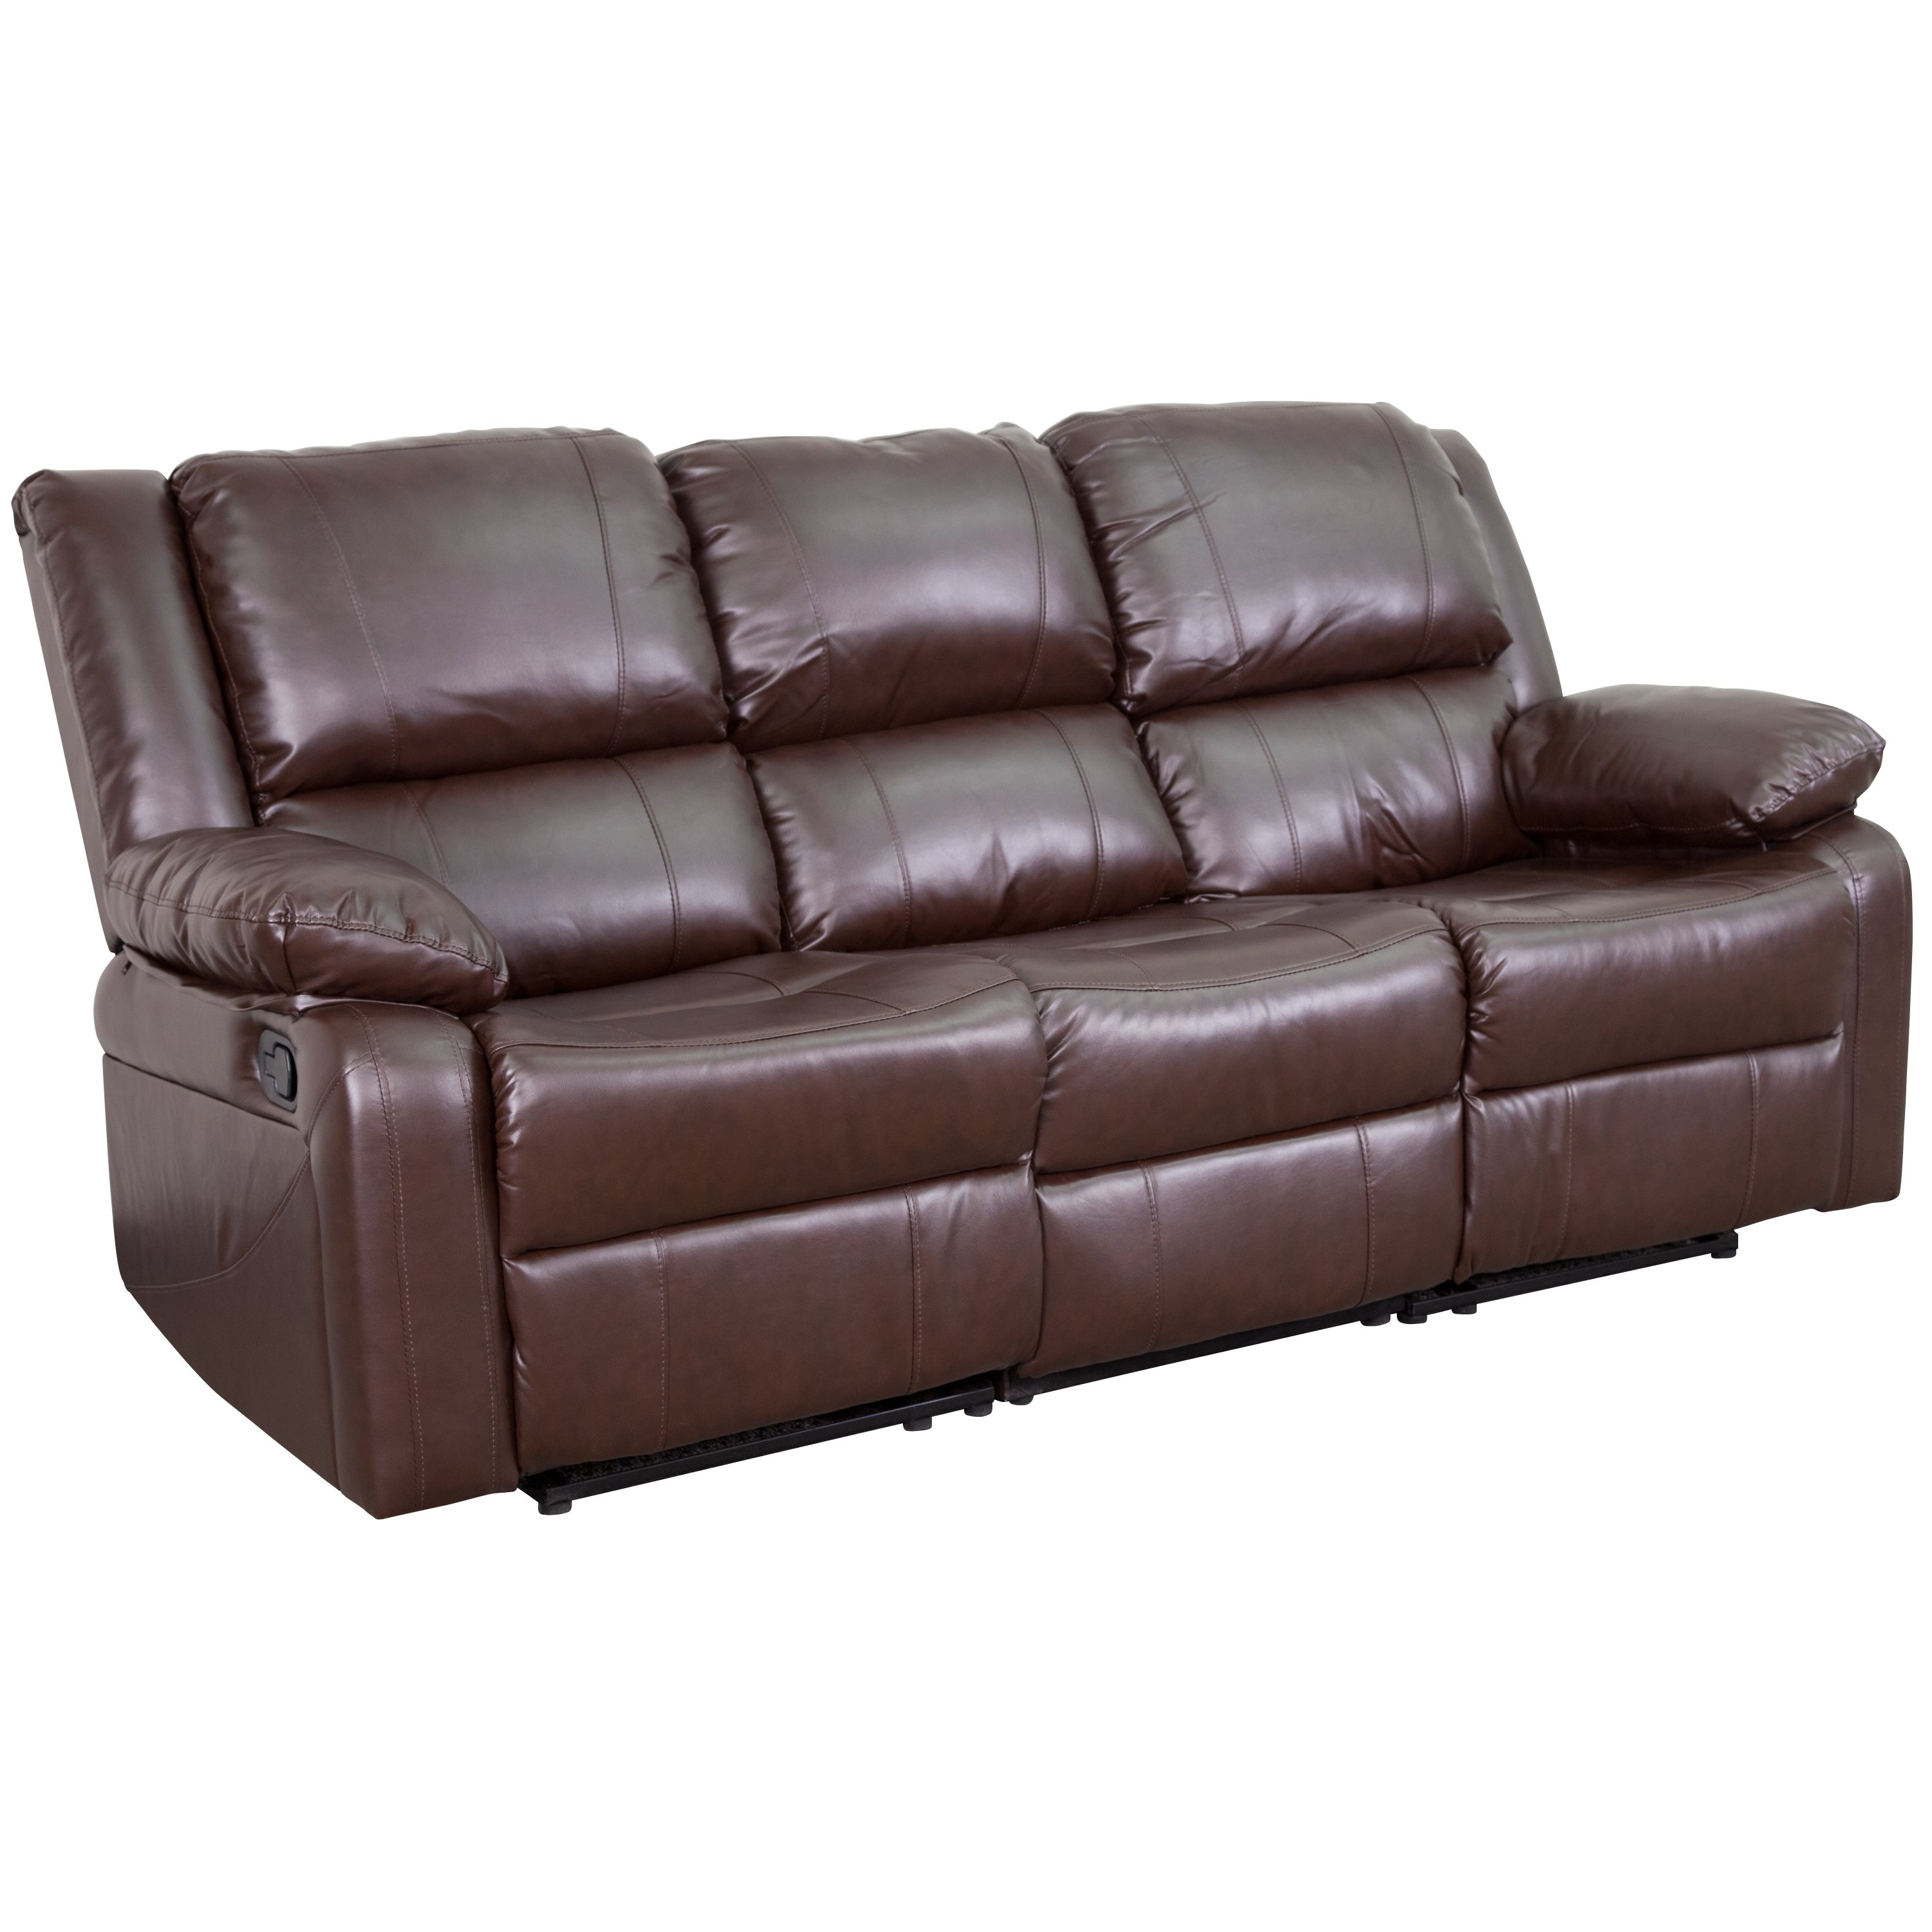 Harmony Series Leather Sofa With Two Built In Recliners Black Leather Sofas Leather Reclining Sofa Flash Furniture